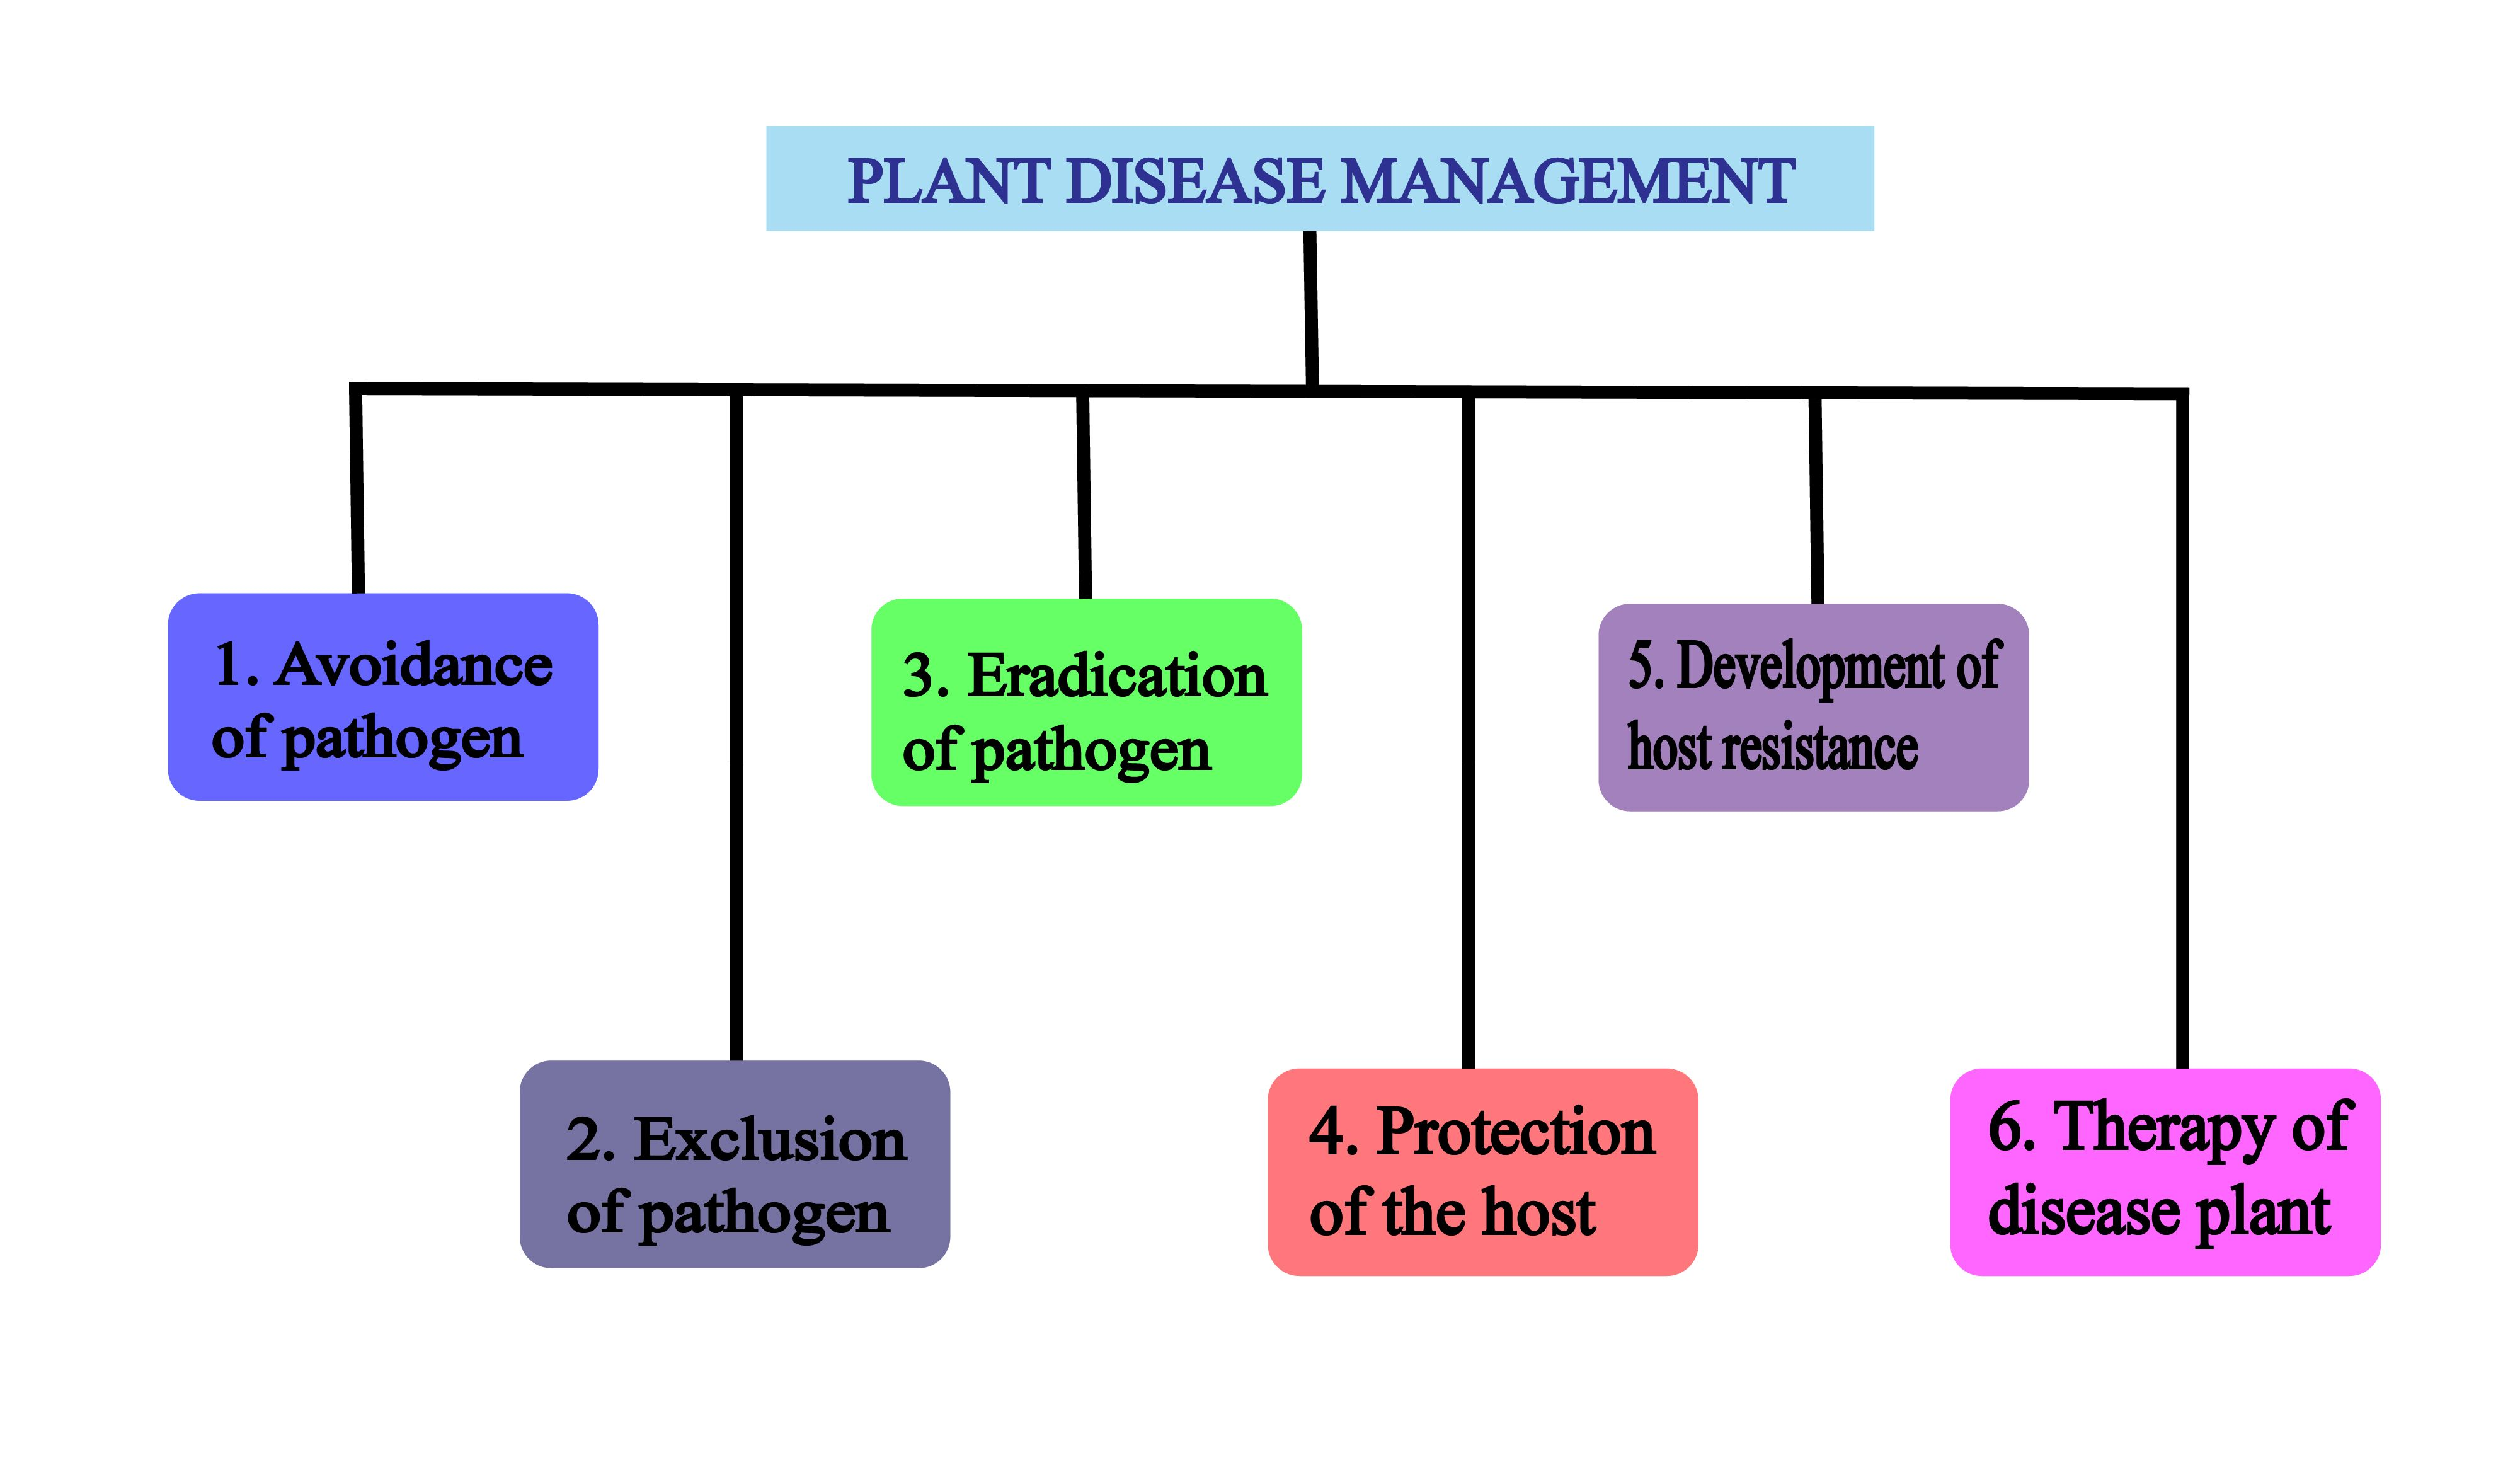 The Disease Management includes the idea of continuous